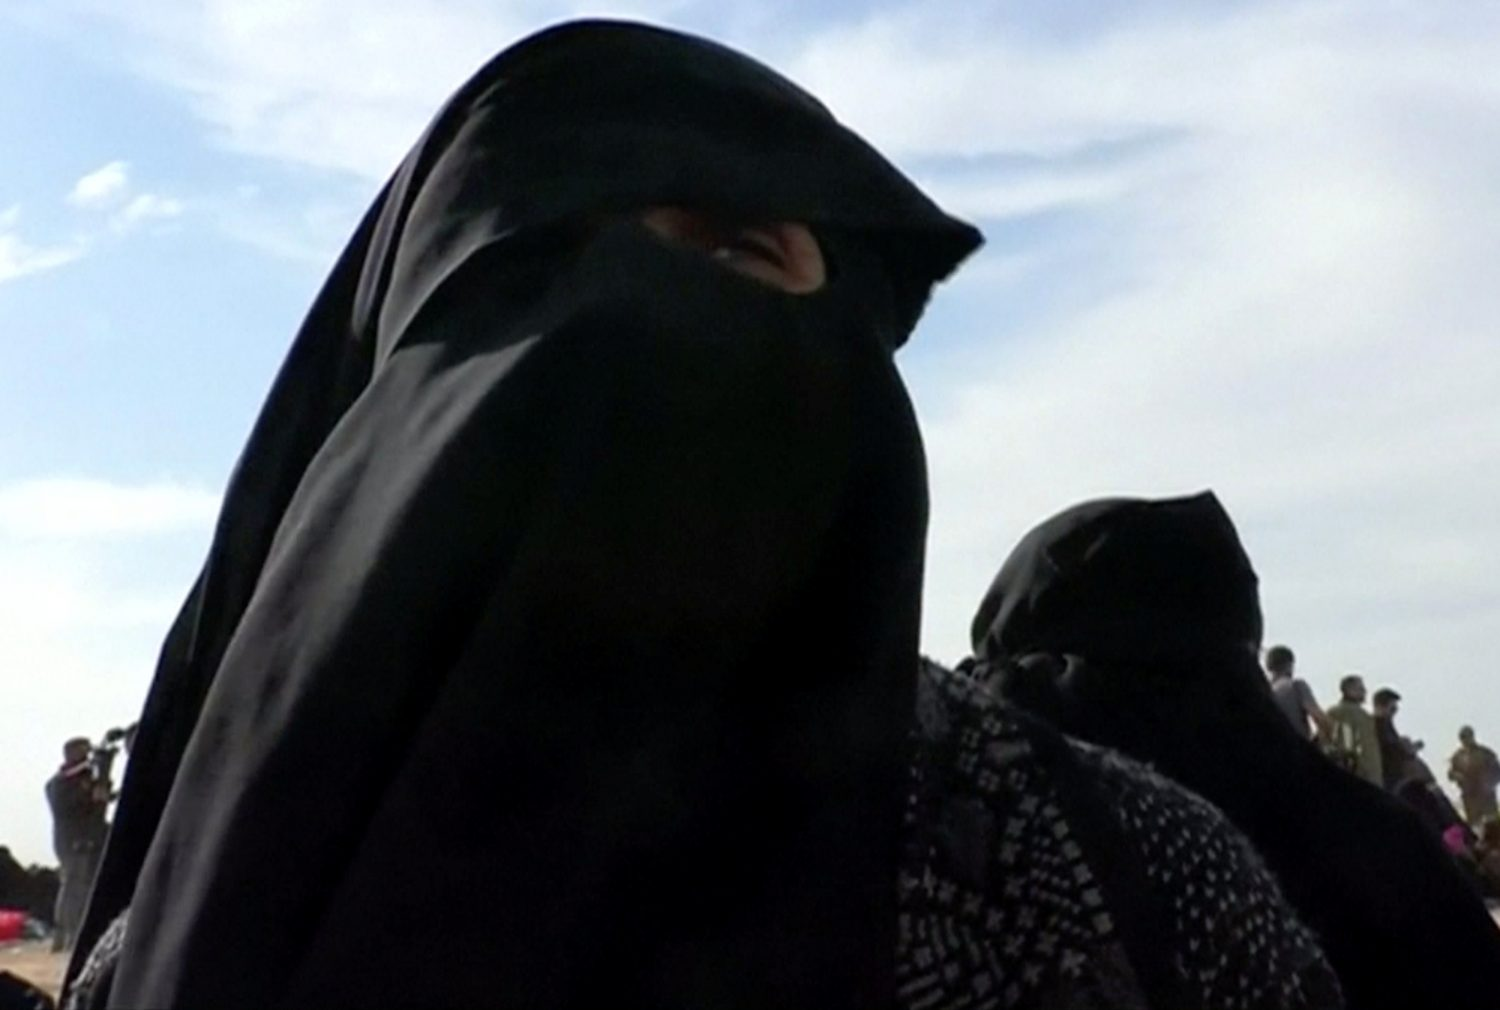 Um Walaa, originally from Morocco with French nationality, and widow of an Islamic state fighter, is seen near Baghouz, Syria in this still image taken from a video shot on March 5, 2019. ReutersTV via REUTERS